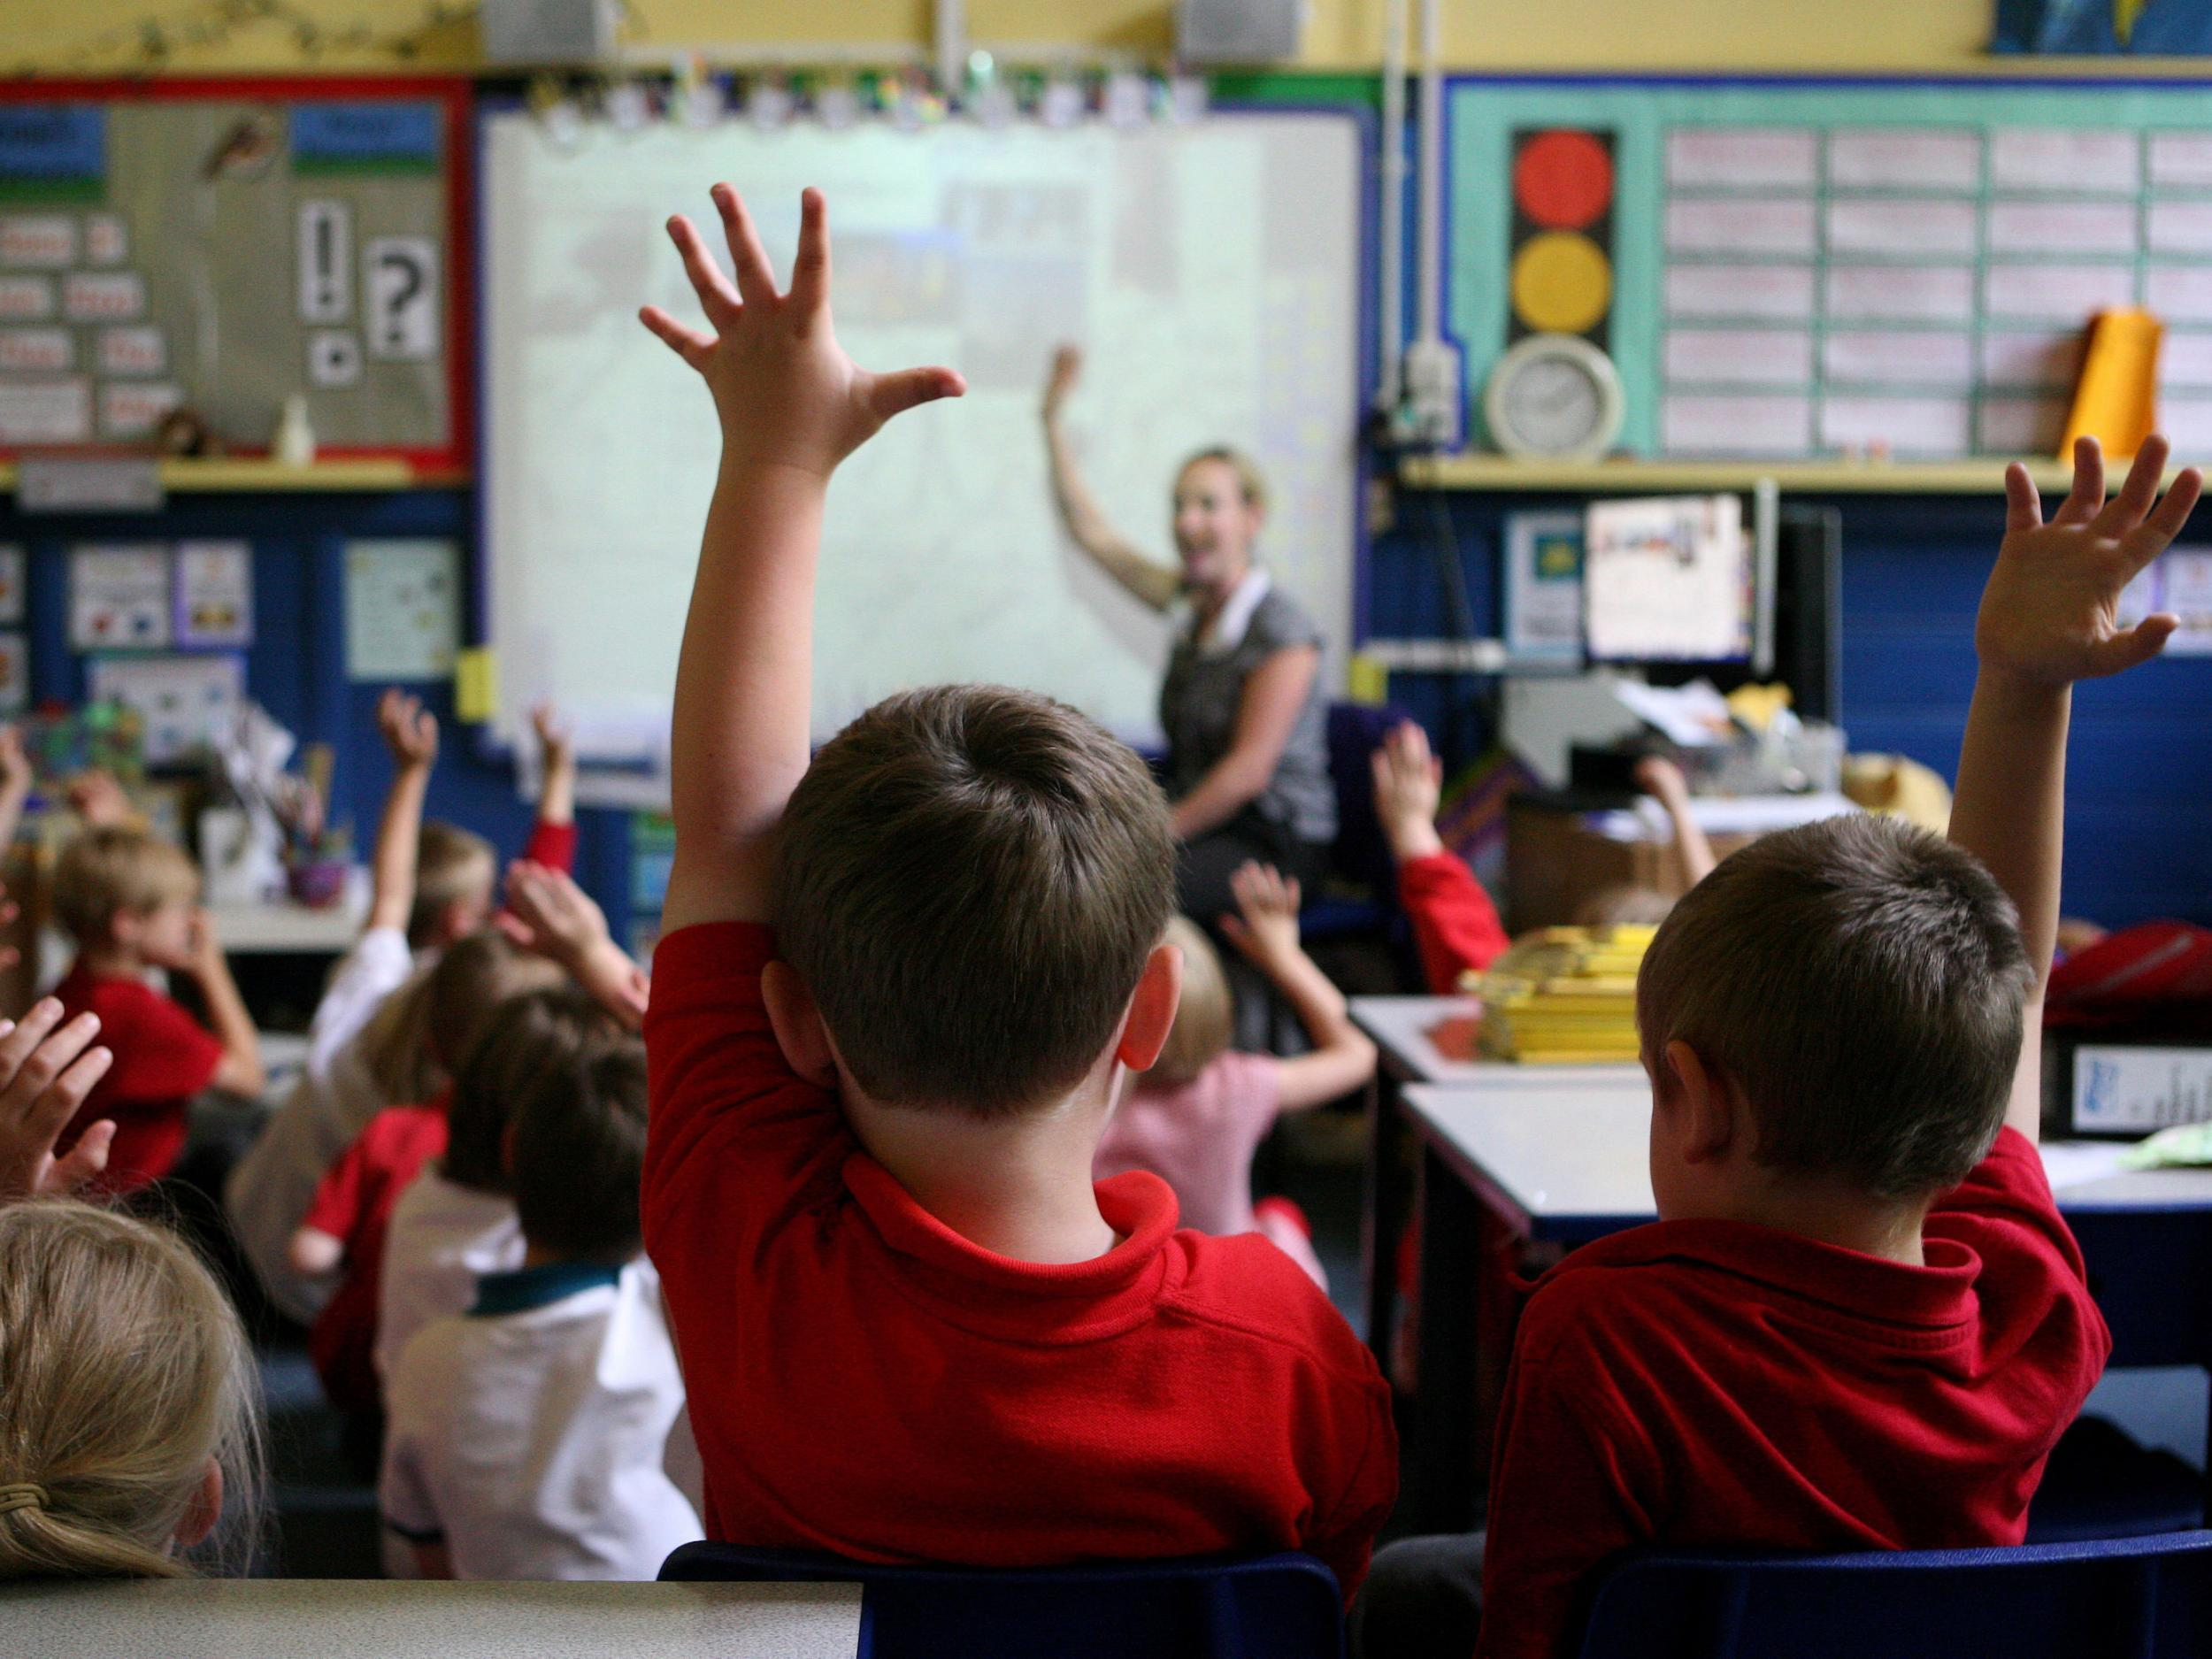 More teachers leaving profession than joining for second year running